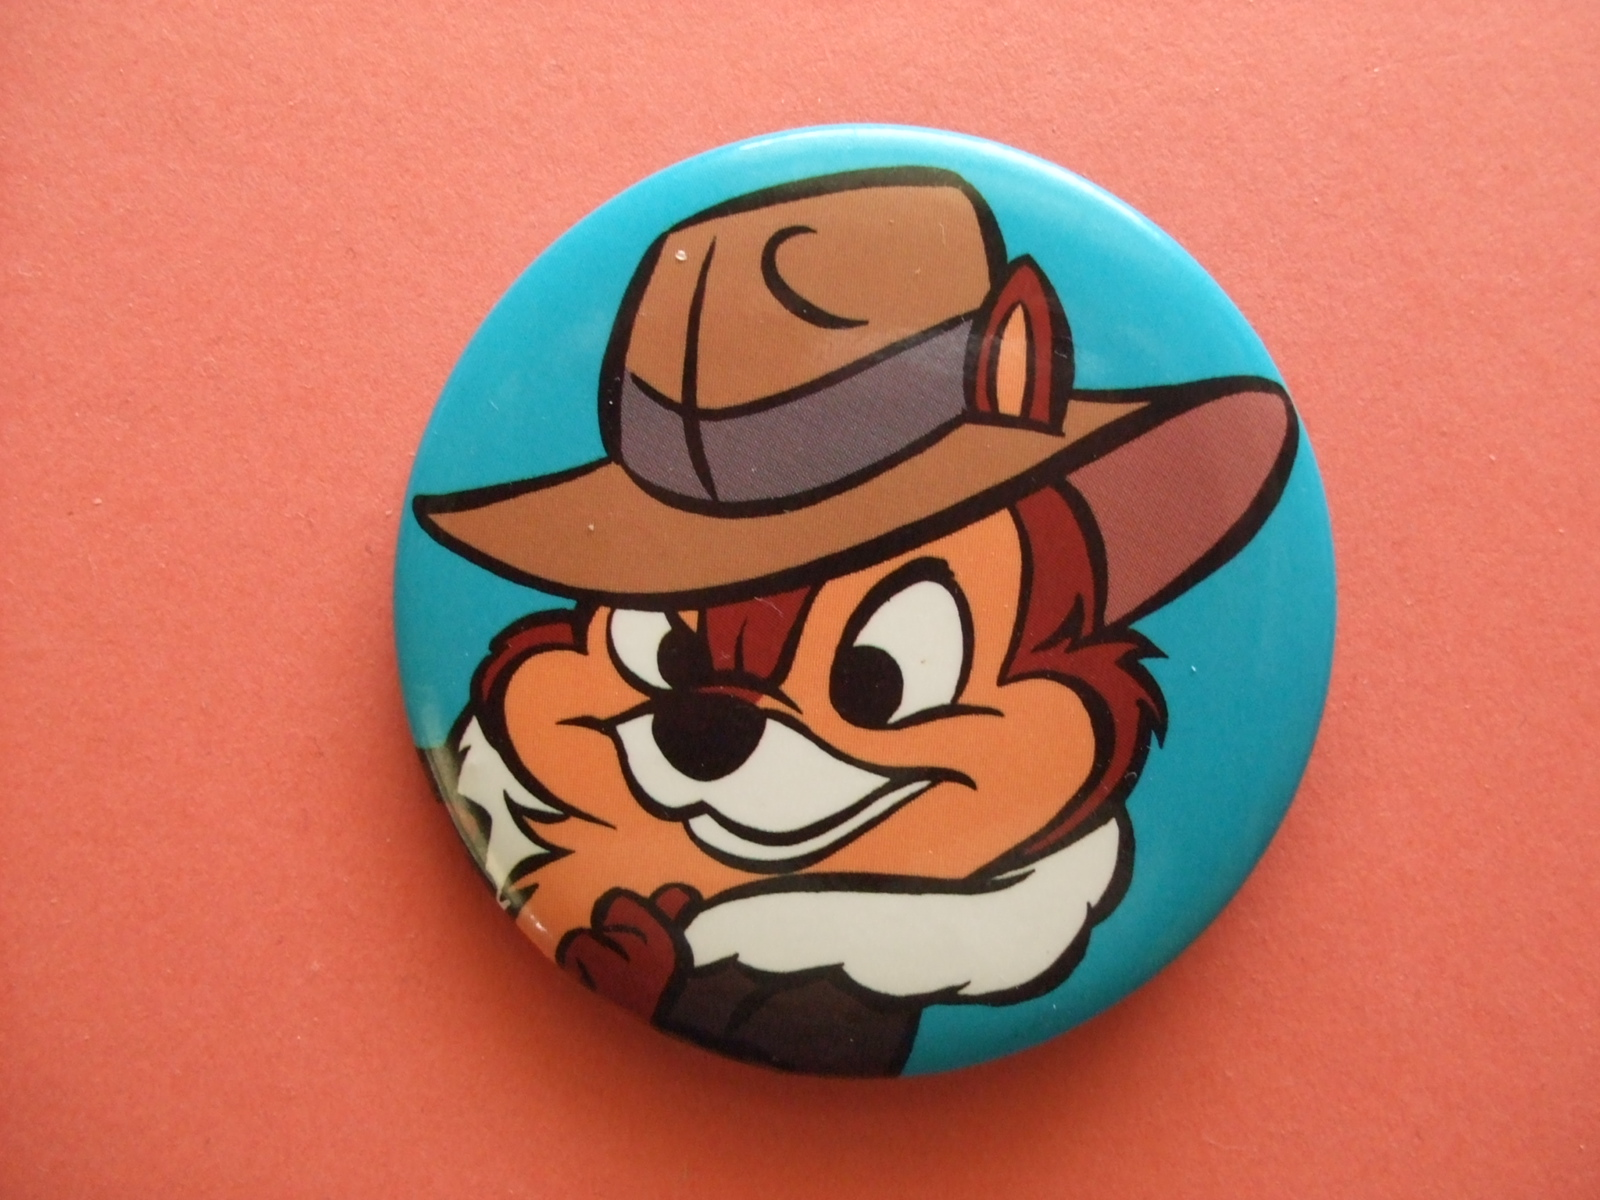 Chip and dale wallpaper and background image 1600x1200 - Chip n dale wallpapers free download ...